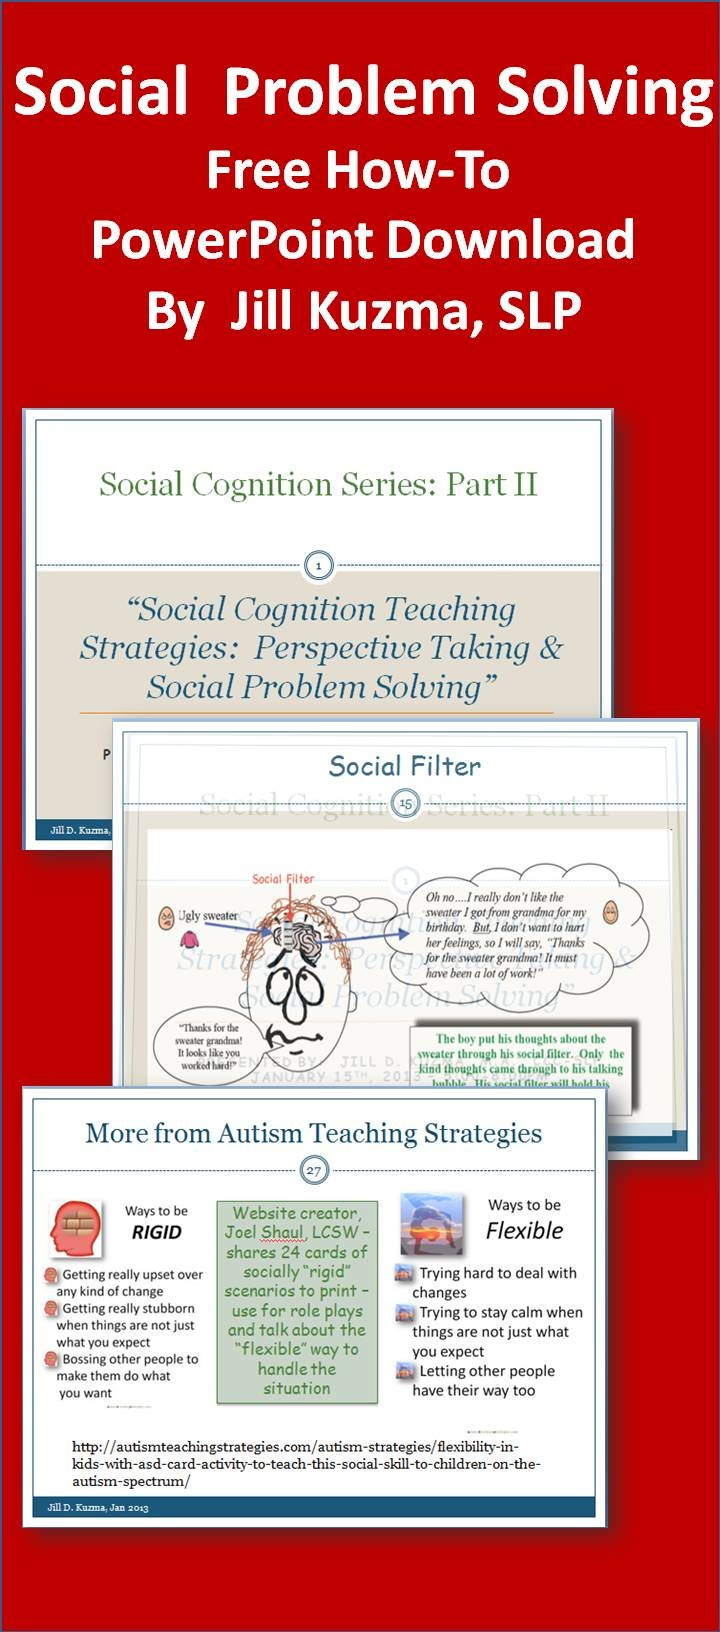 PowerPoint on social cognition